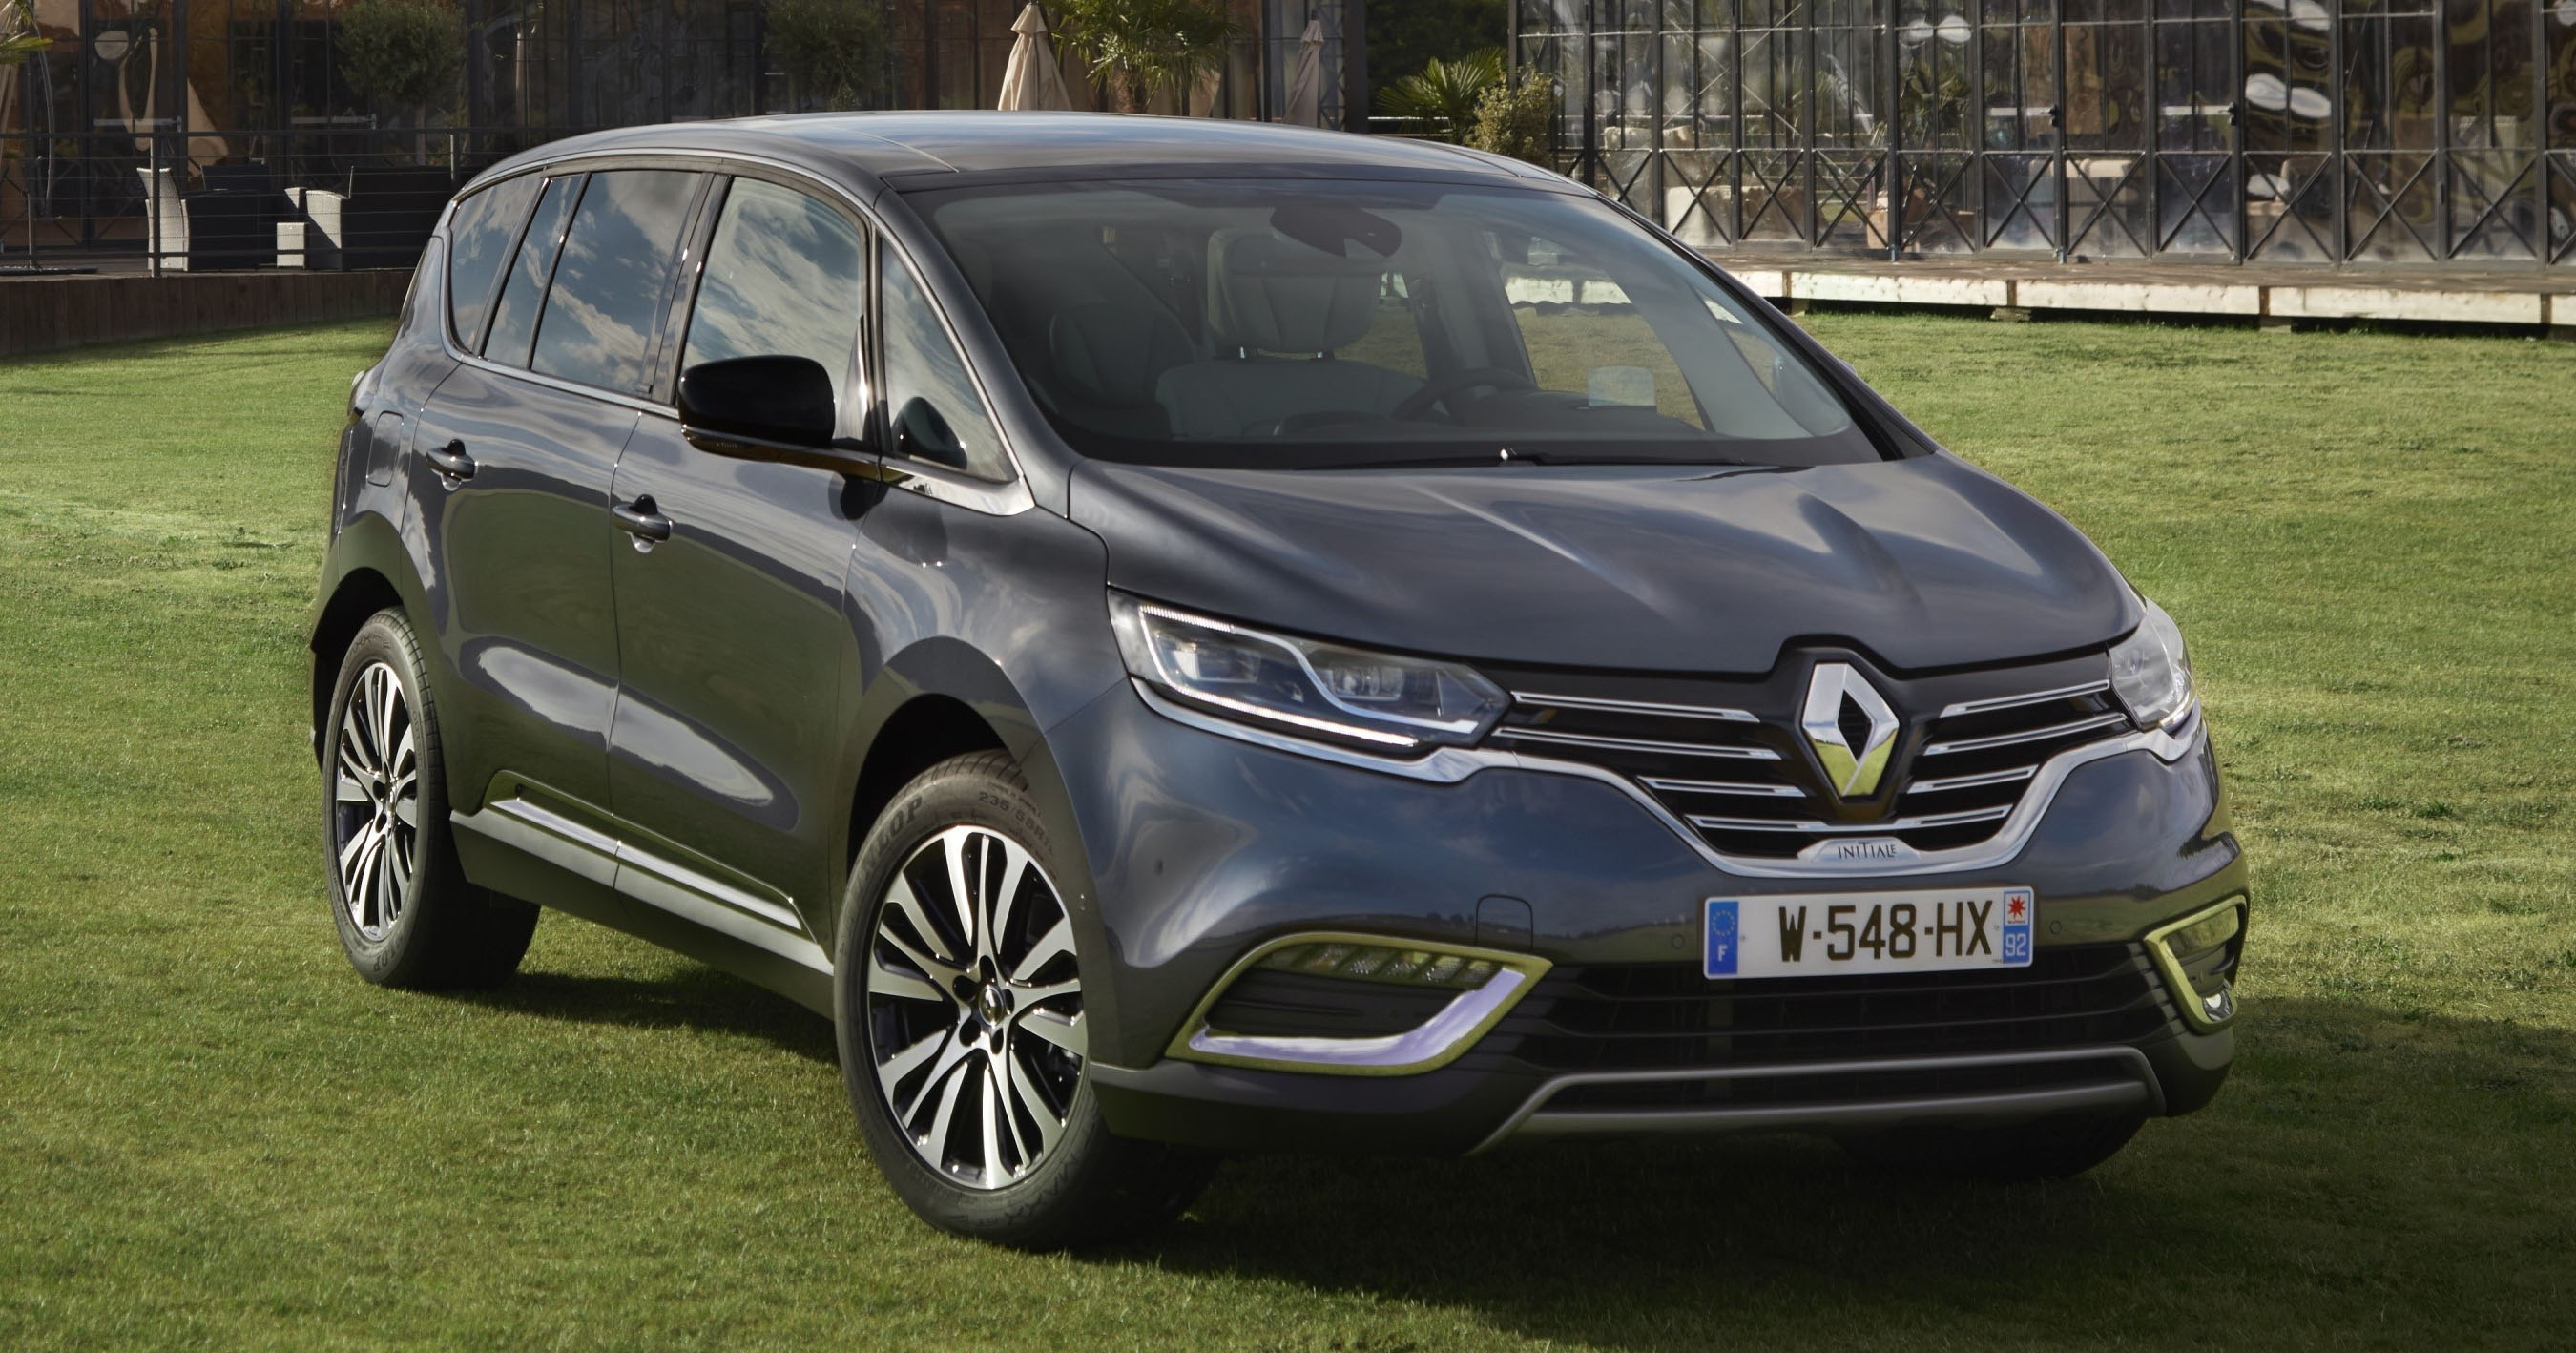 2017 renault espace revealed with new engine kit. Black Bedroom Furniture Sets. Home Design Ideas